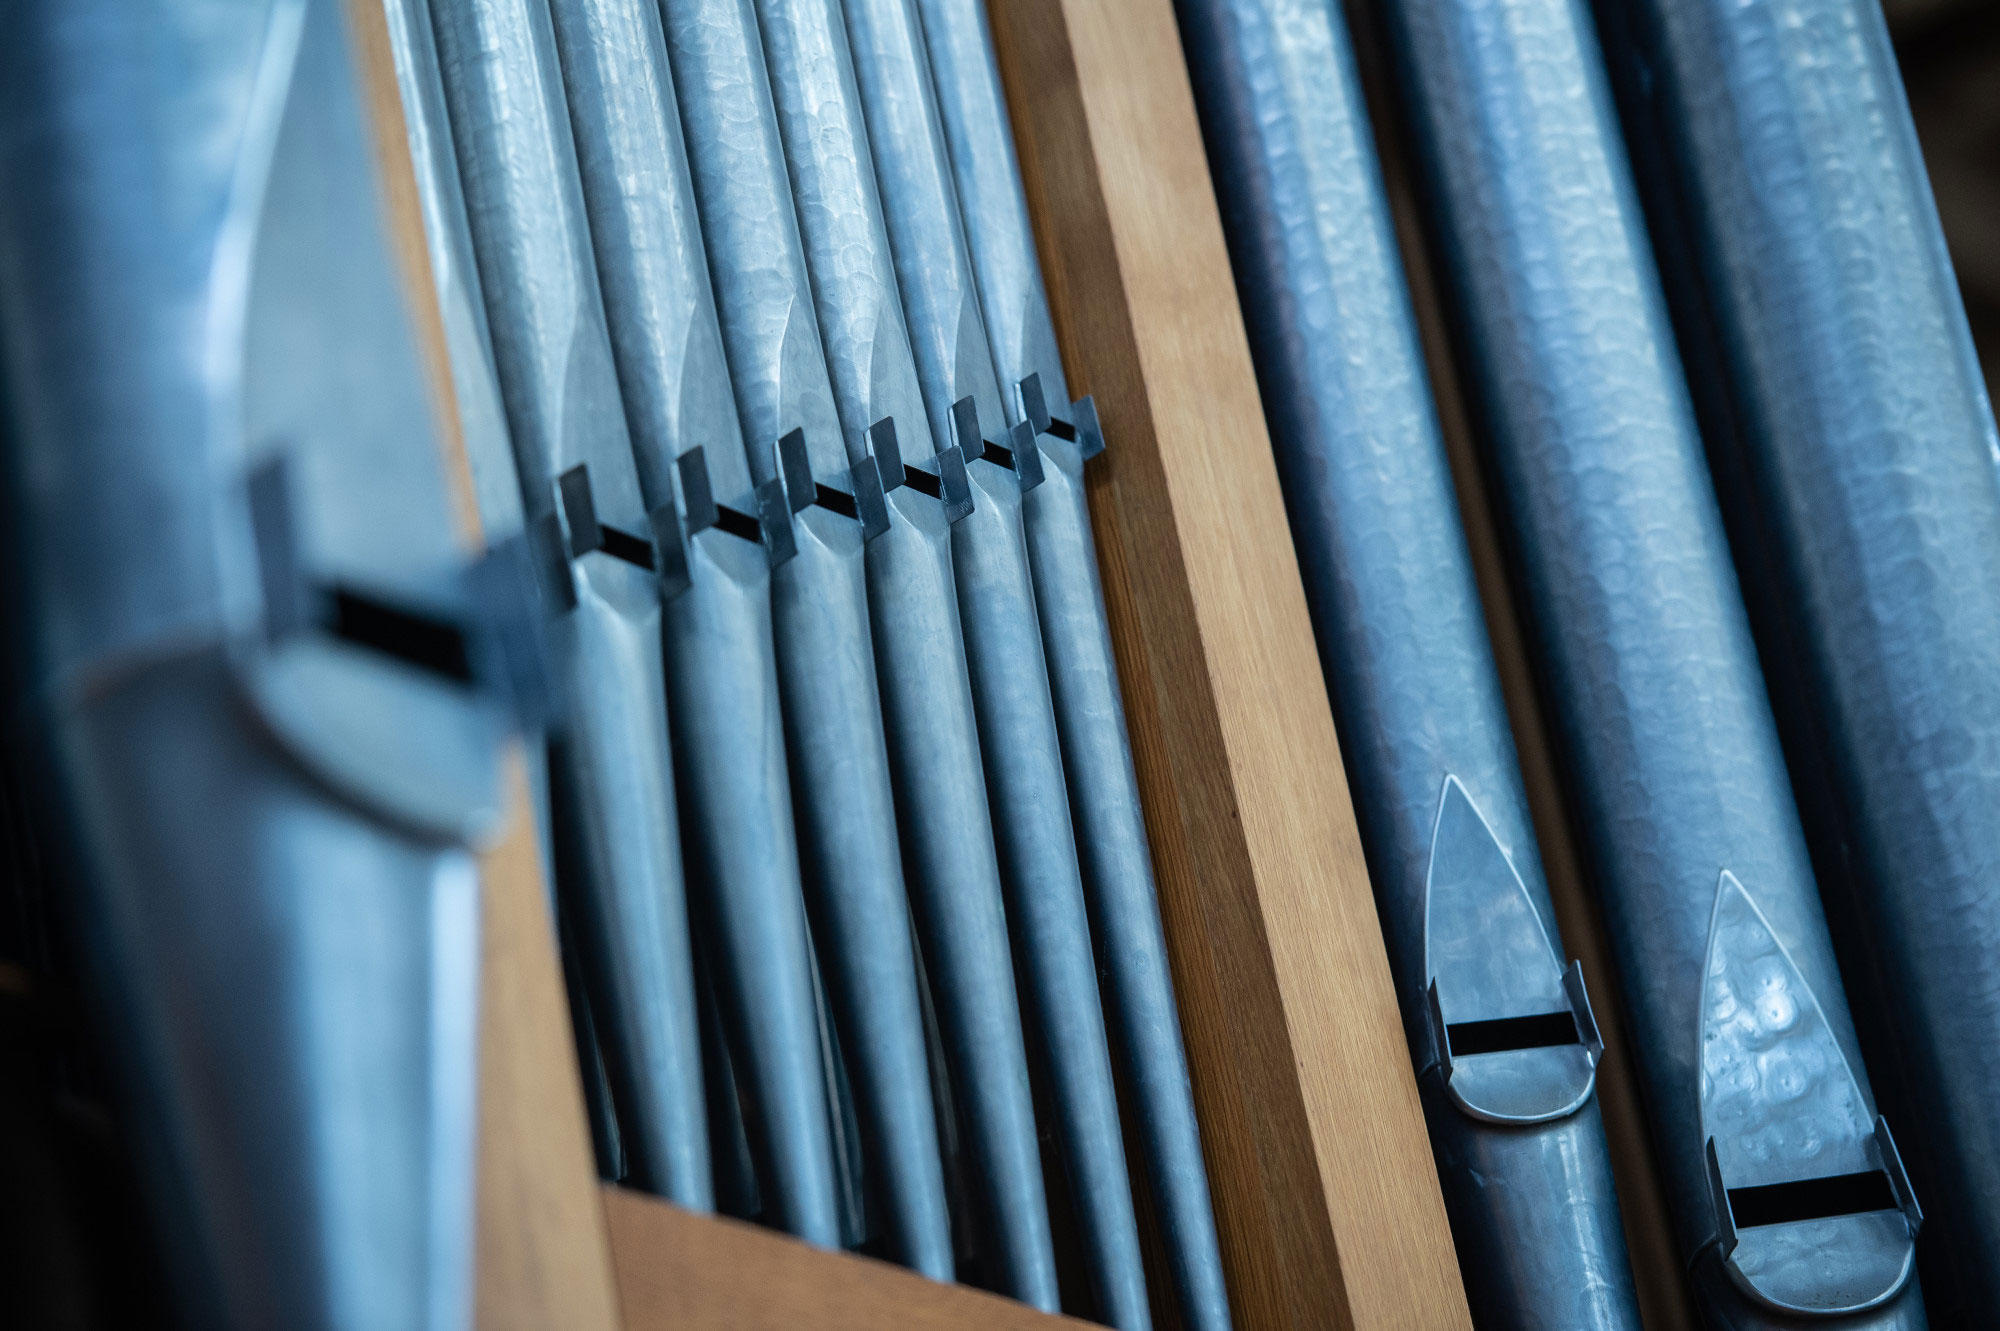 Forthinghay Church organ pipes